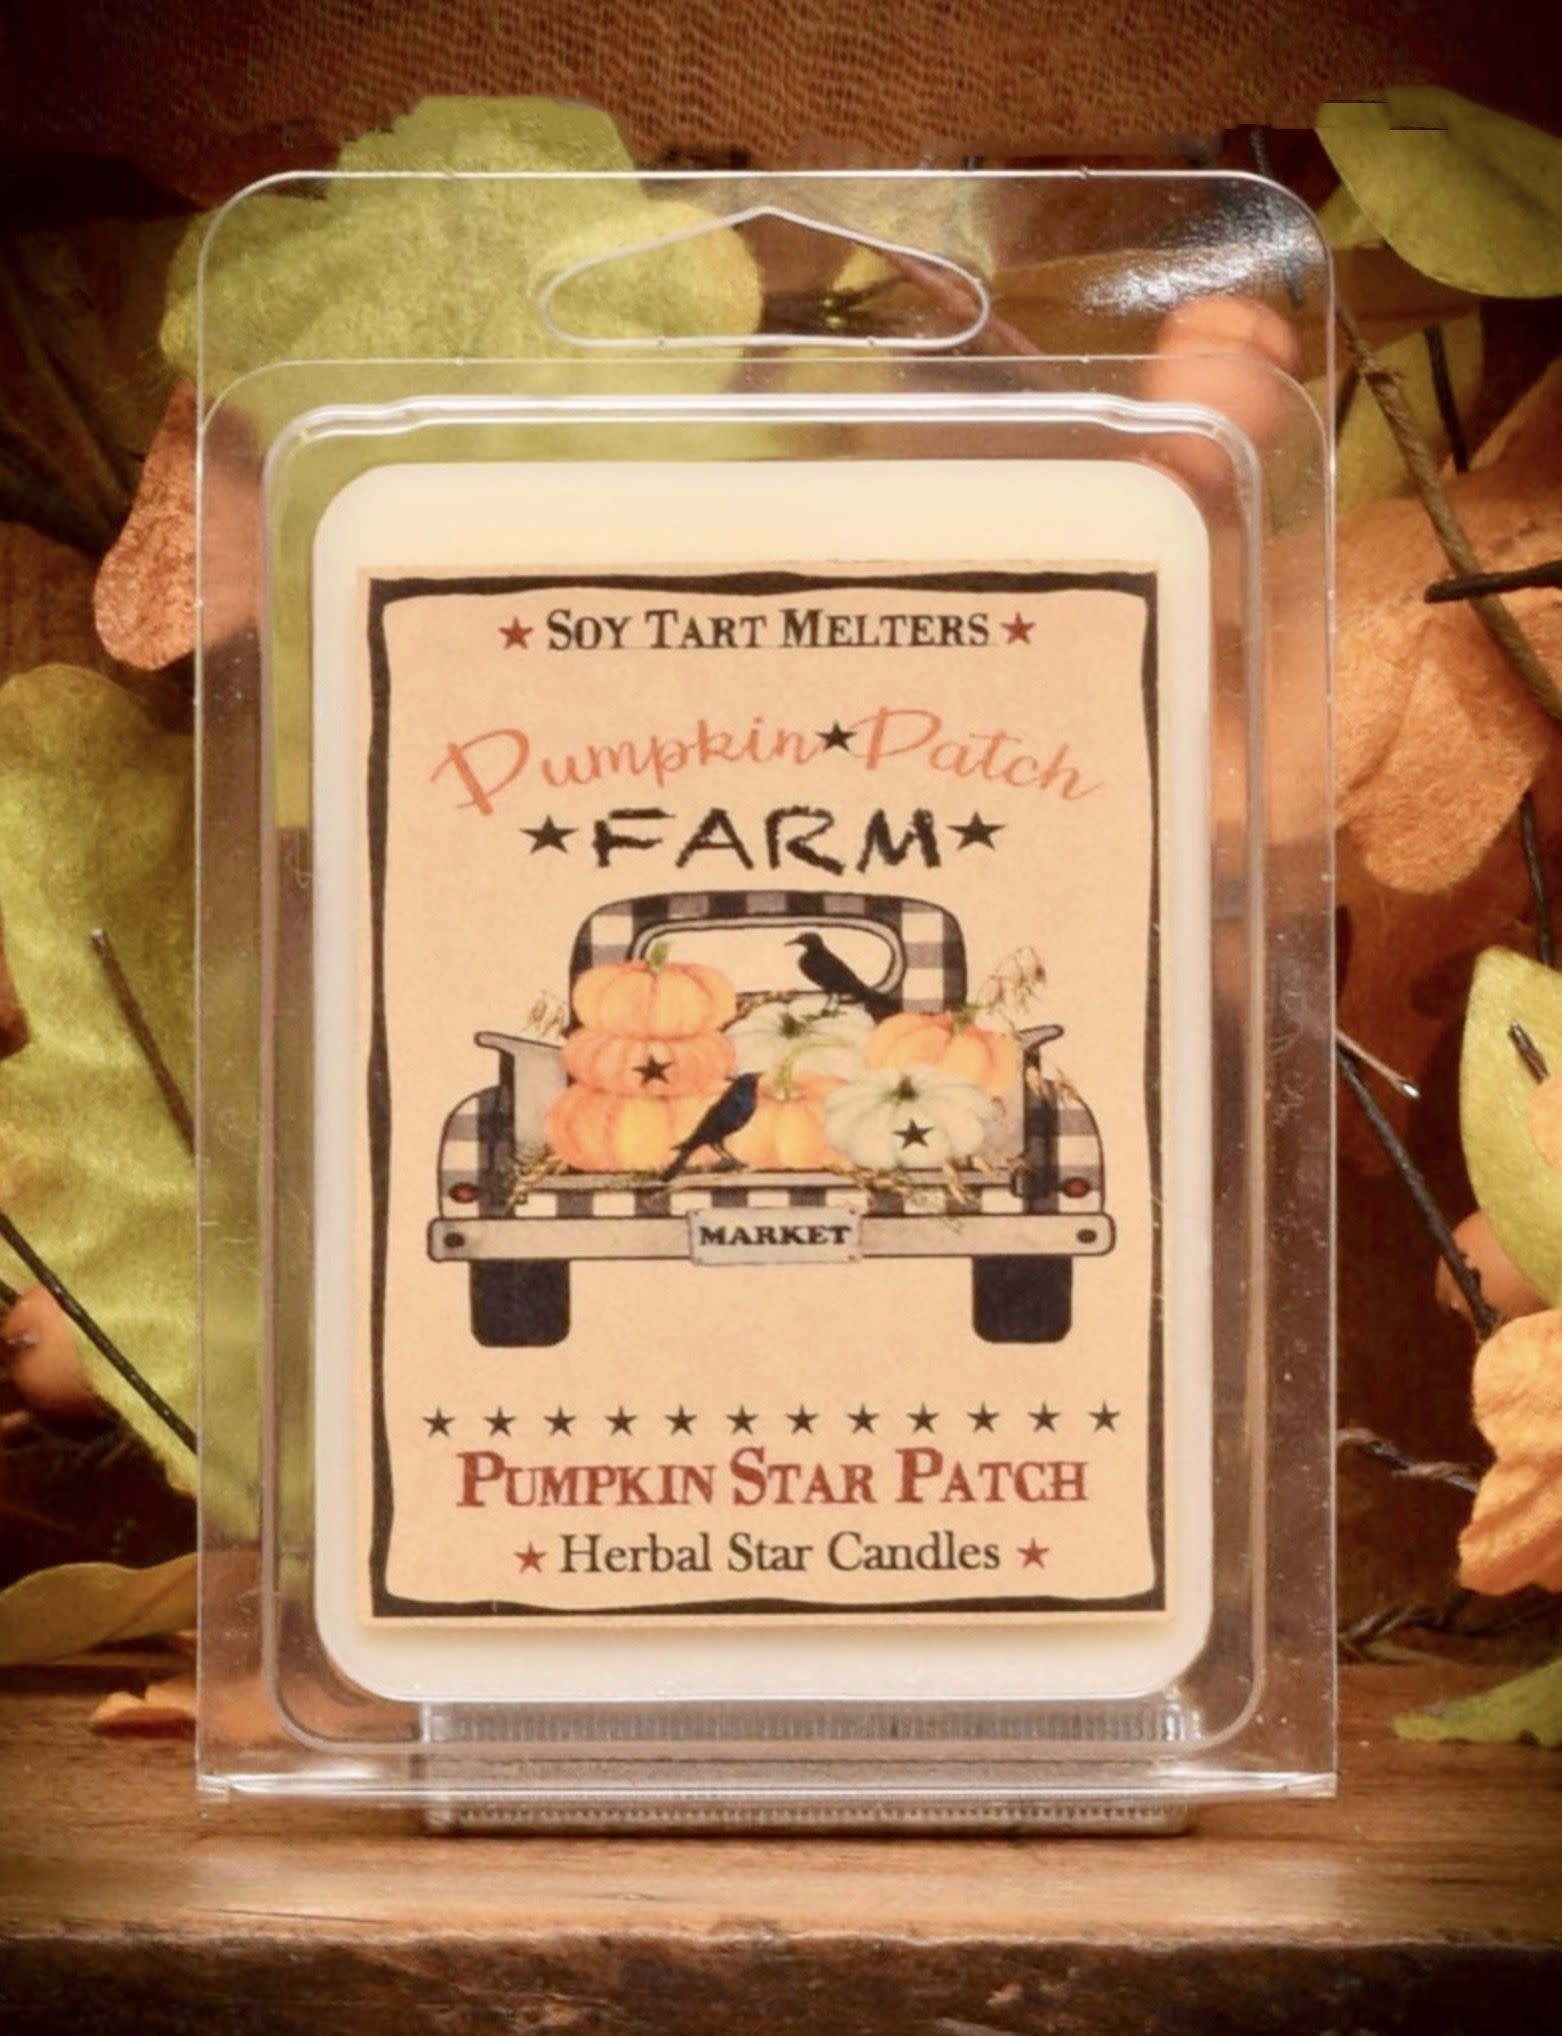 Herbal Star Candles Pumpkin Star Patch Mini Pack of Tarts